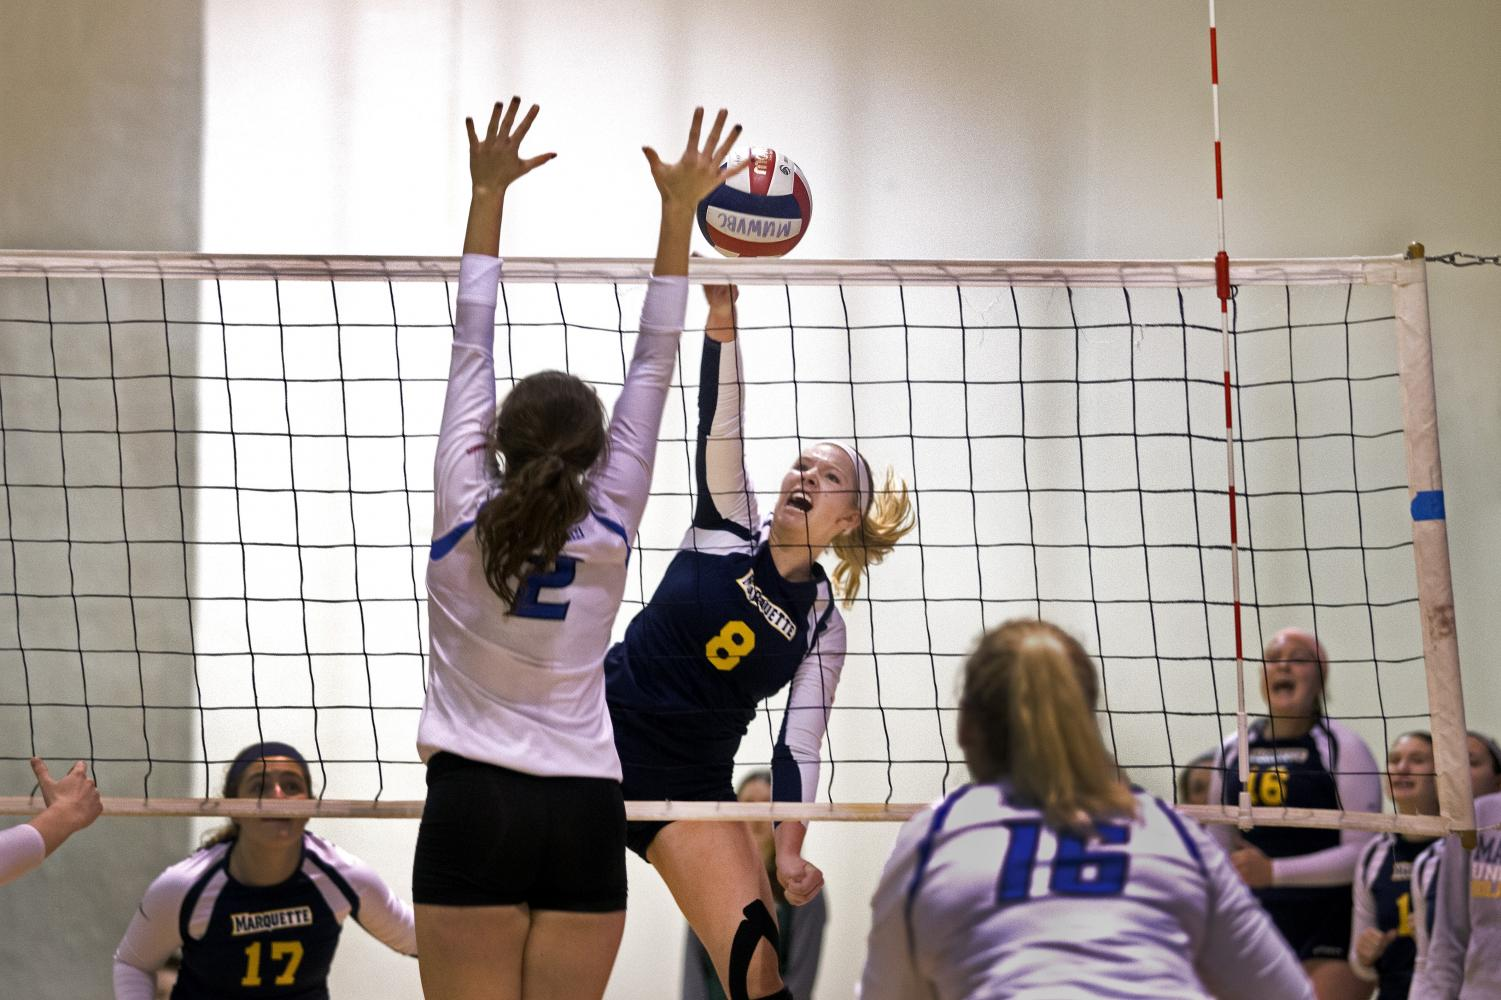 Women's volleyball placed fifth at its home tournament last weekend.